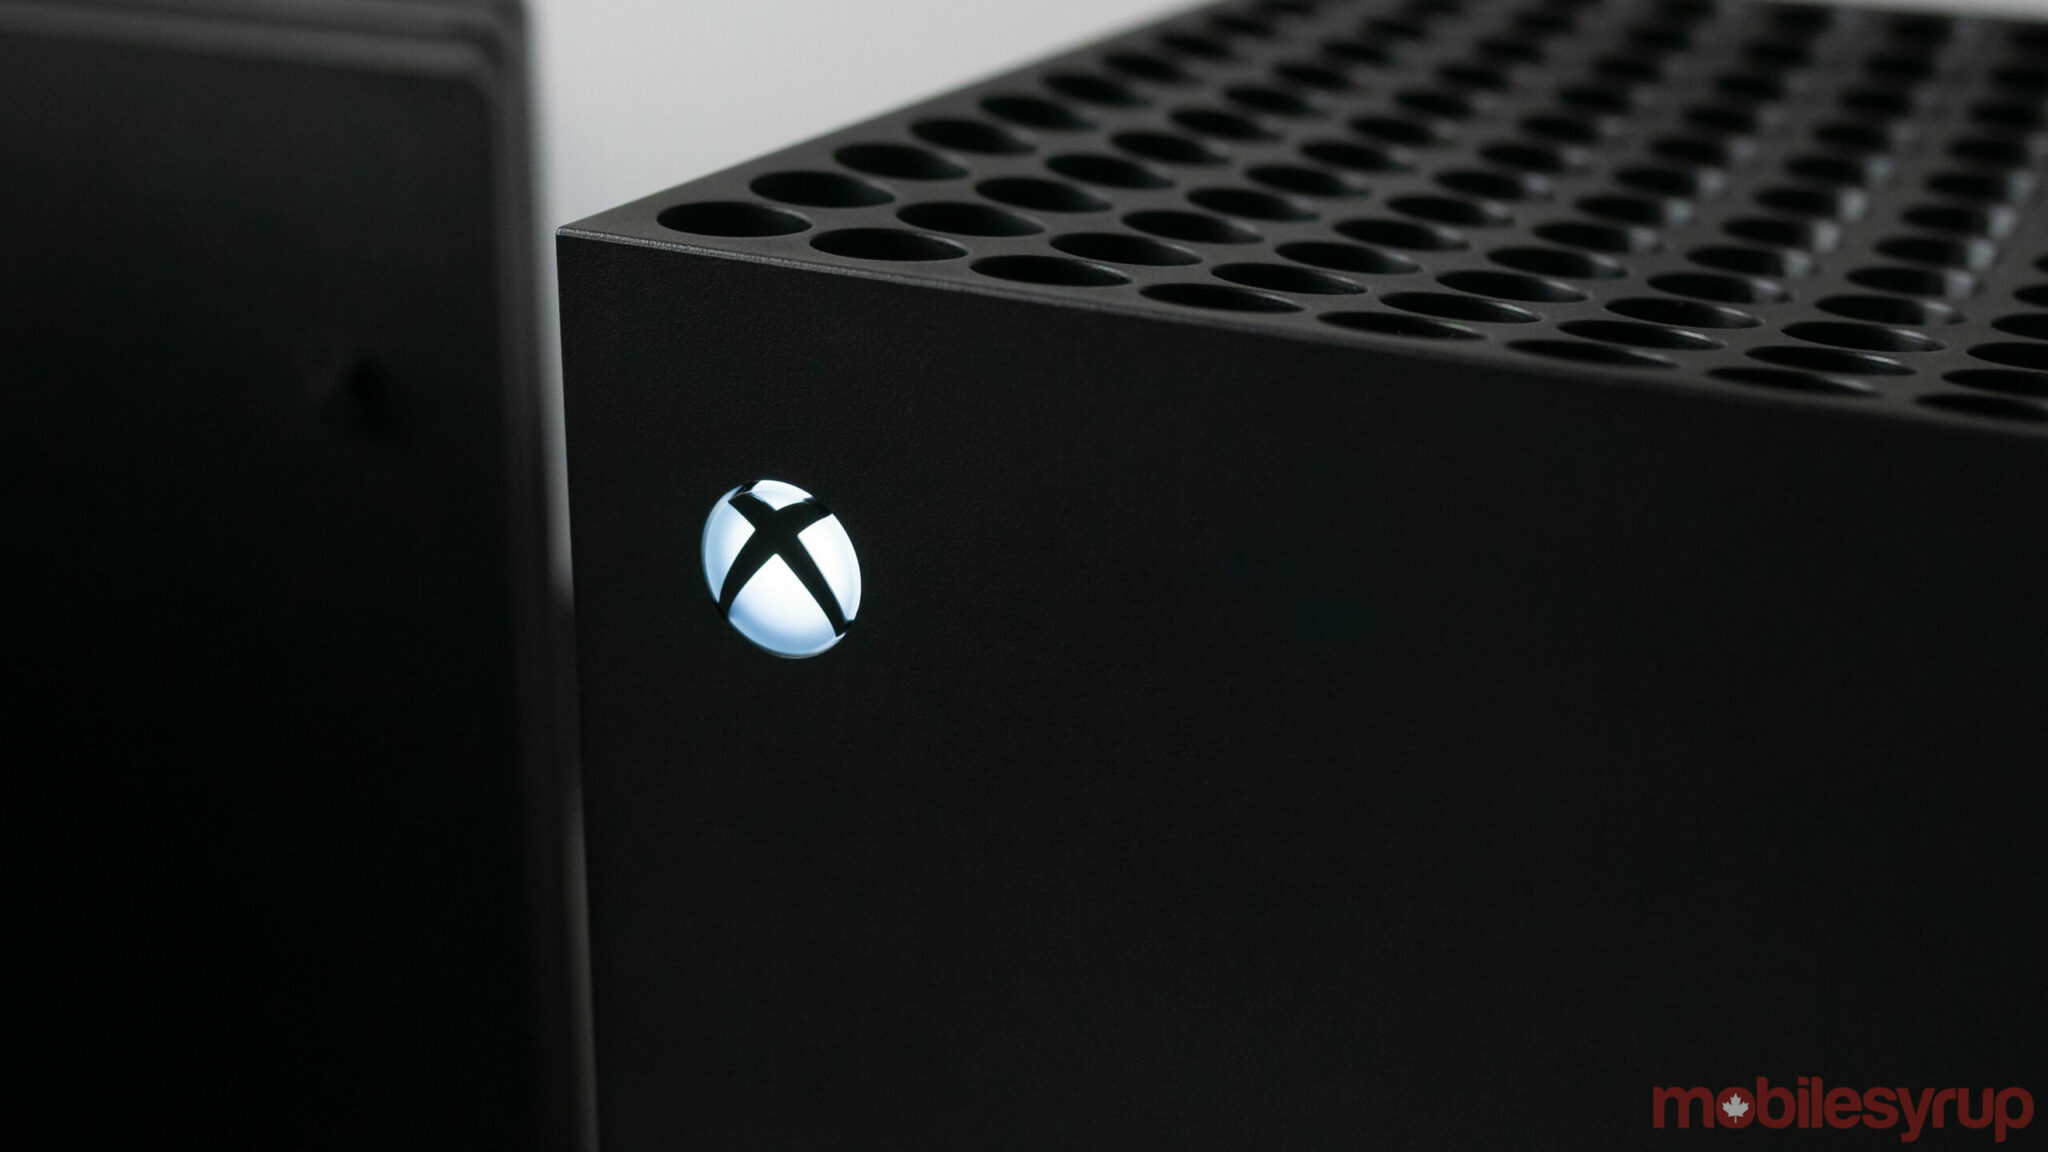 Xbox Live outage causing sign-in issues worldwide